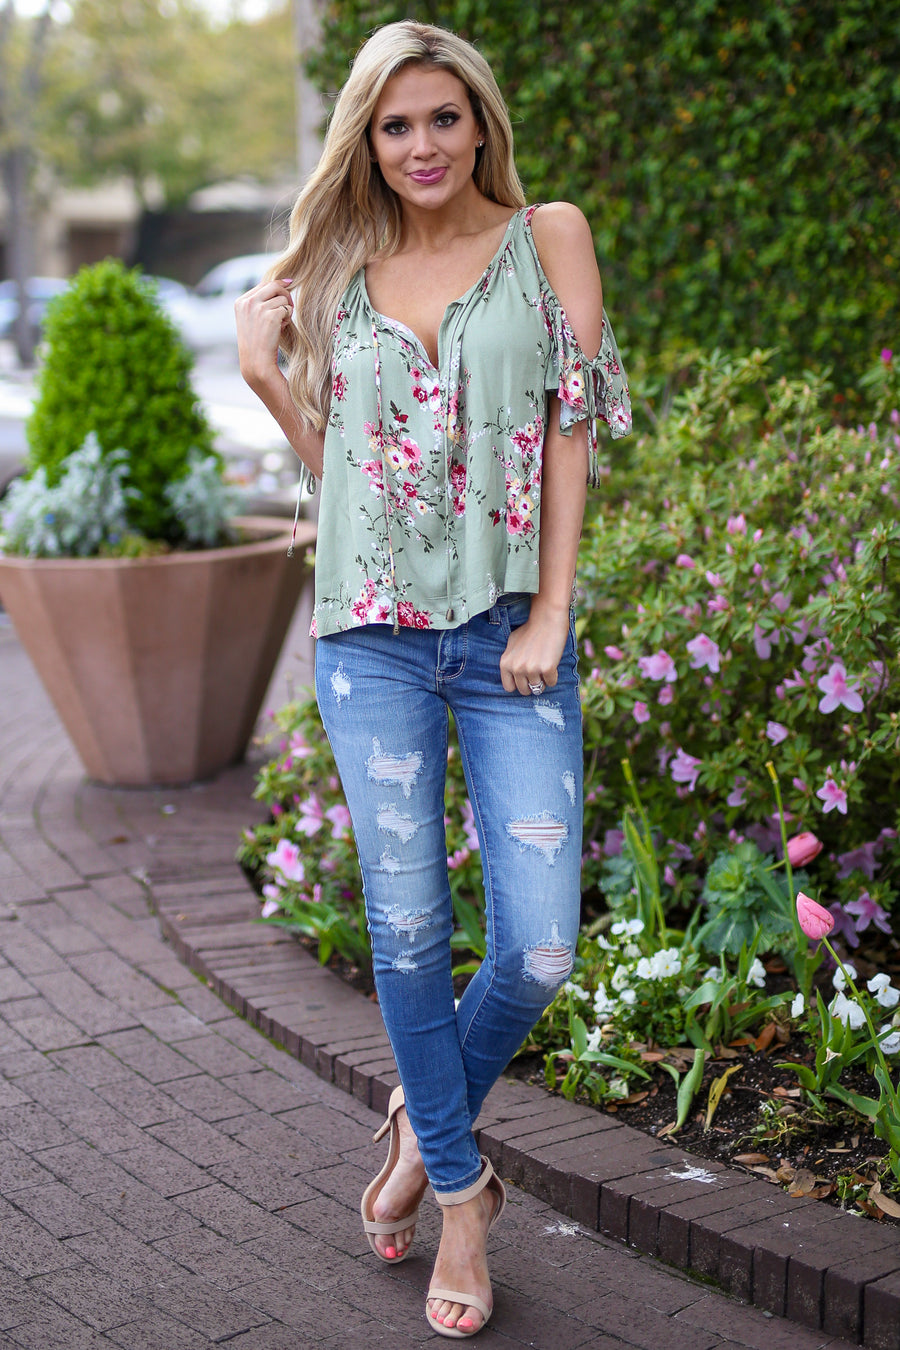 LOVE STITCH Lifetime of Love Top - Mint floral print cold shoulder top, front, Closet Candy Boutique